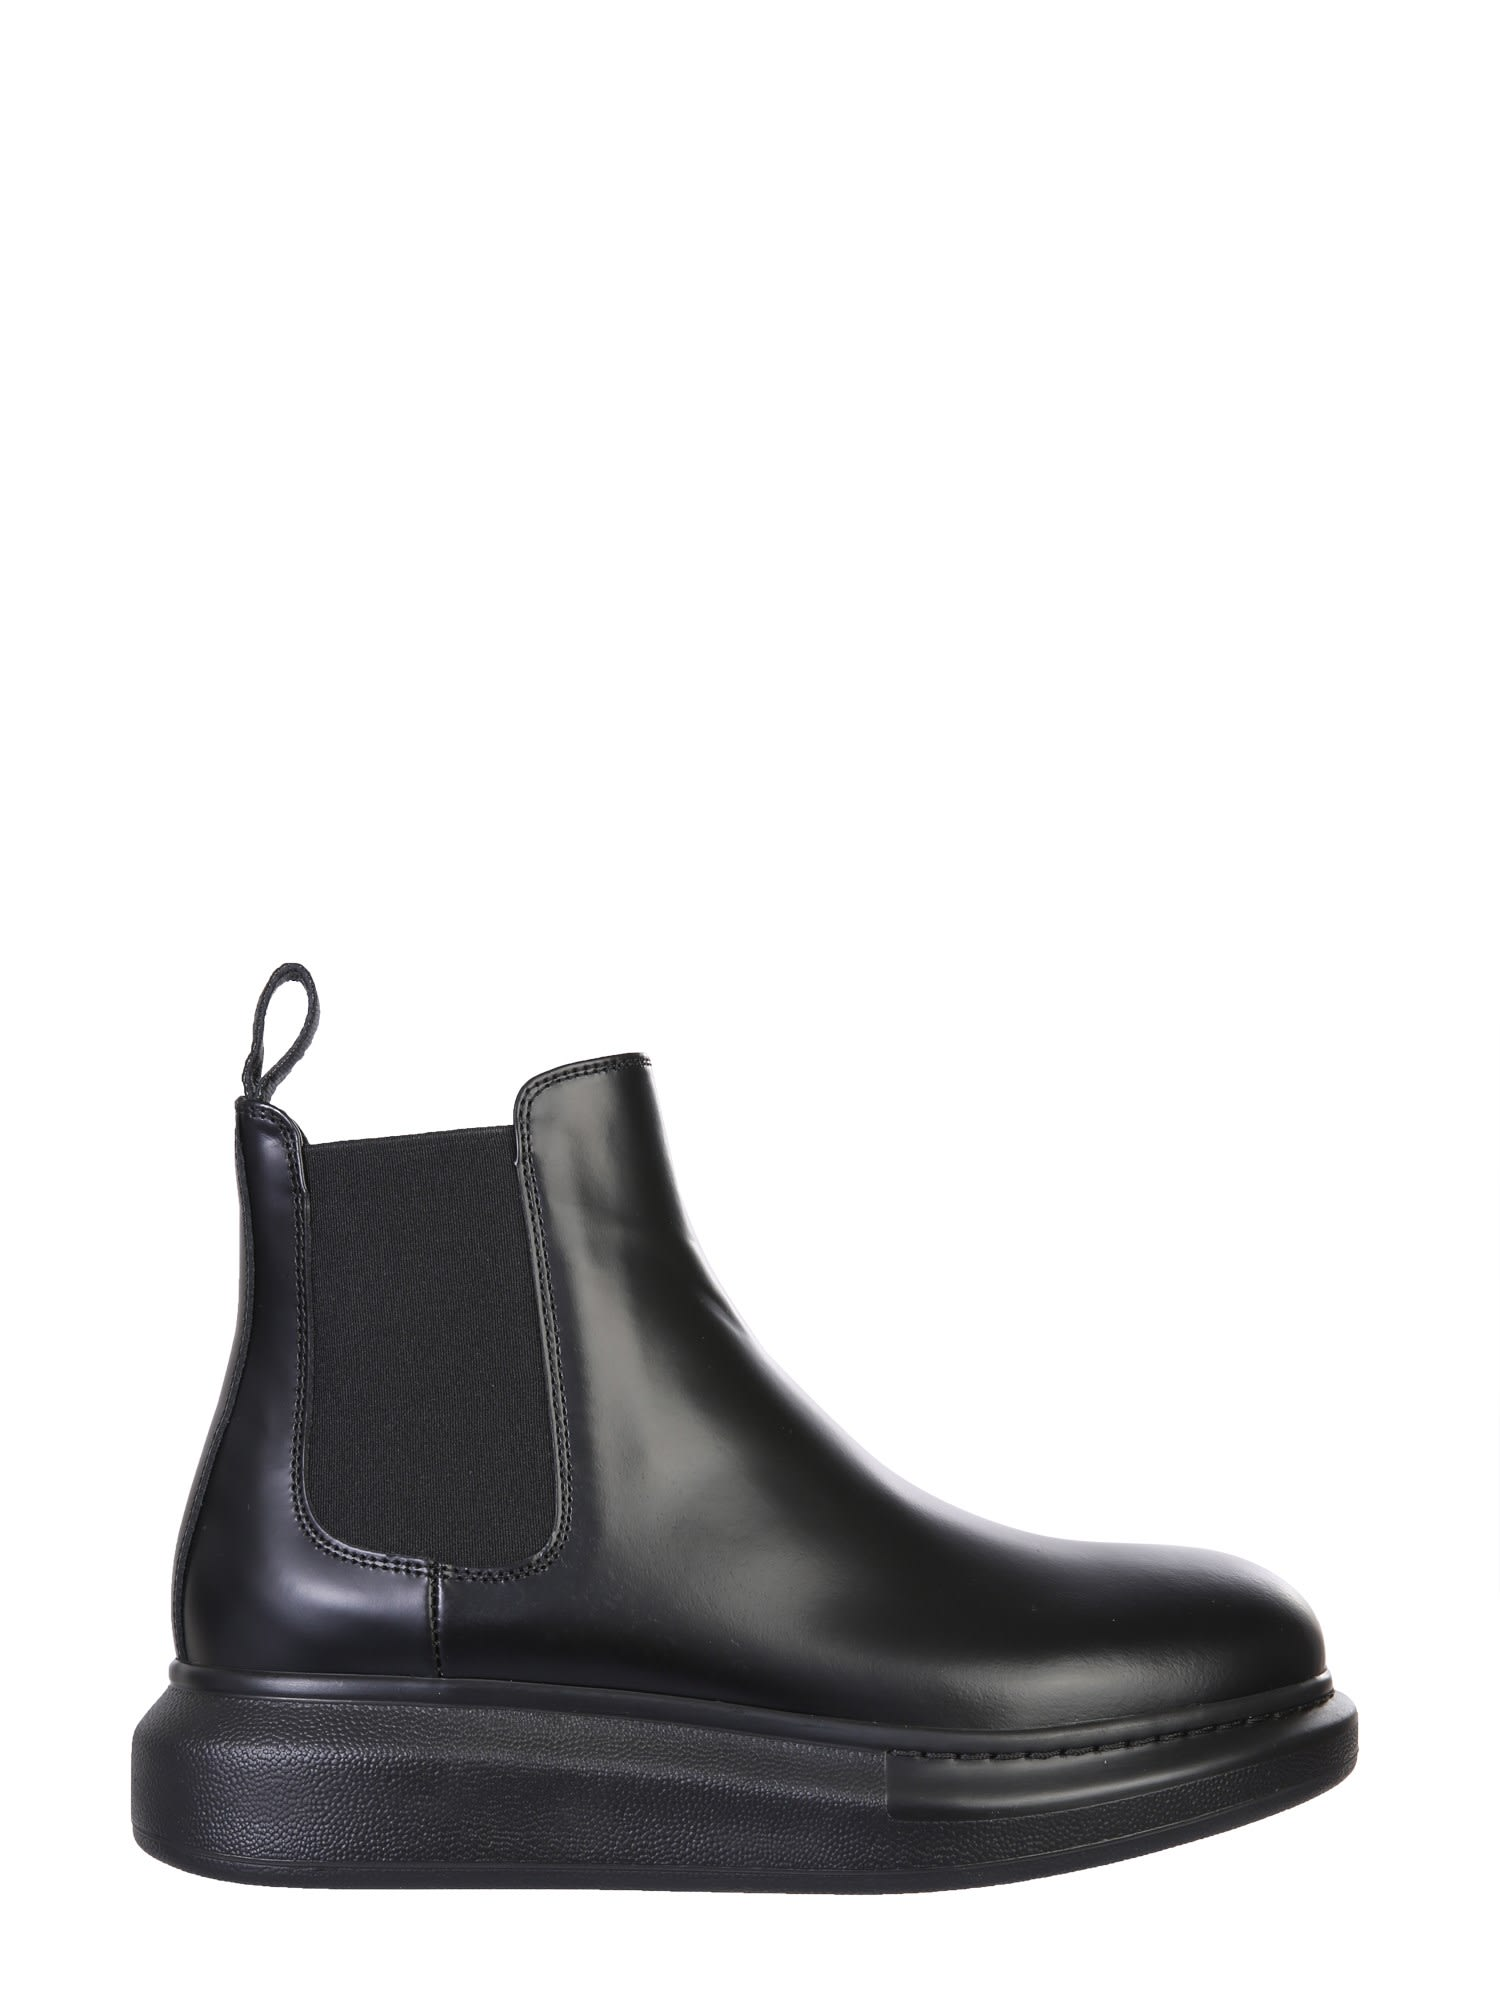 Buy Alexander McQueen Chelsea Hybrid Boots online, shop Alexander McQueen shoes with free shipping